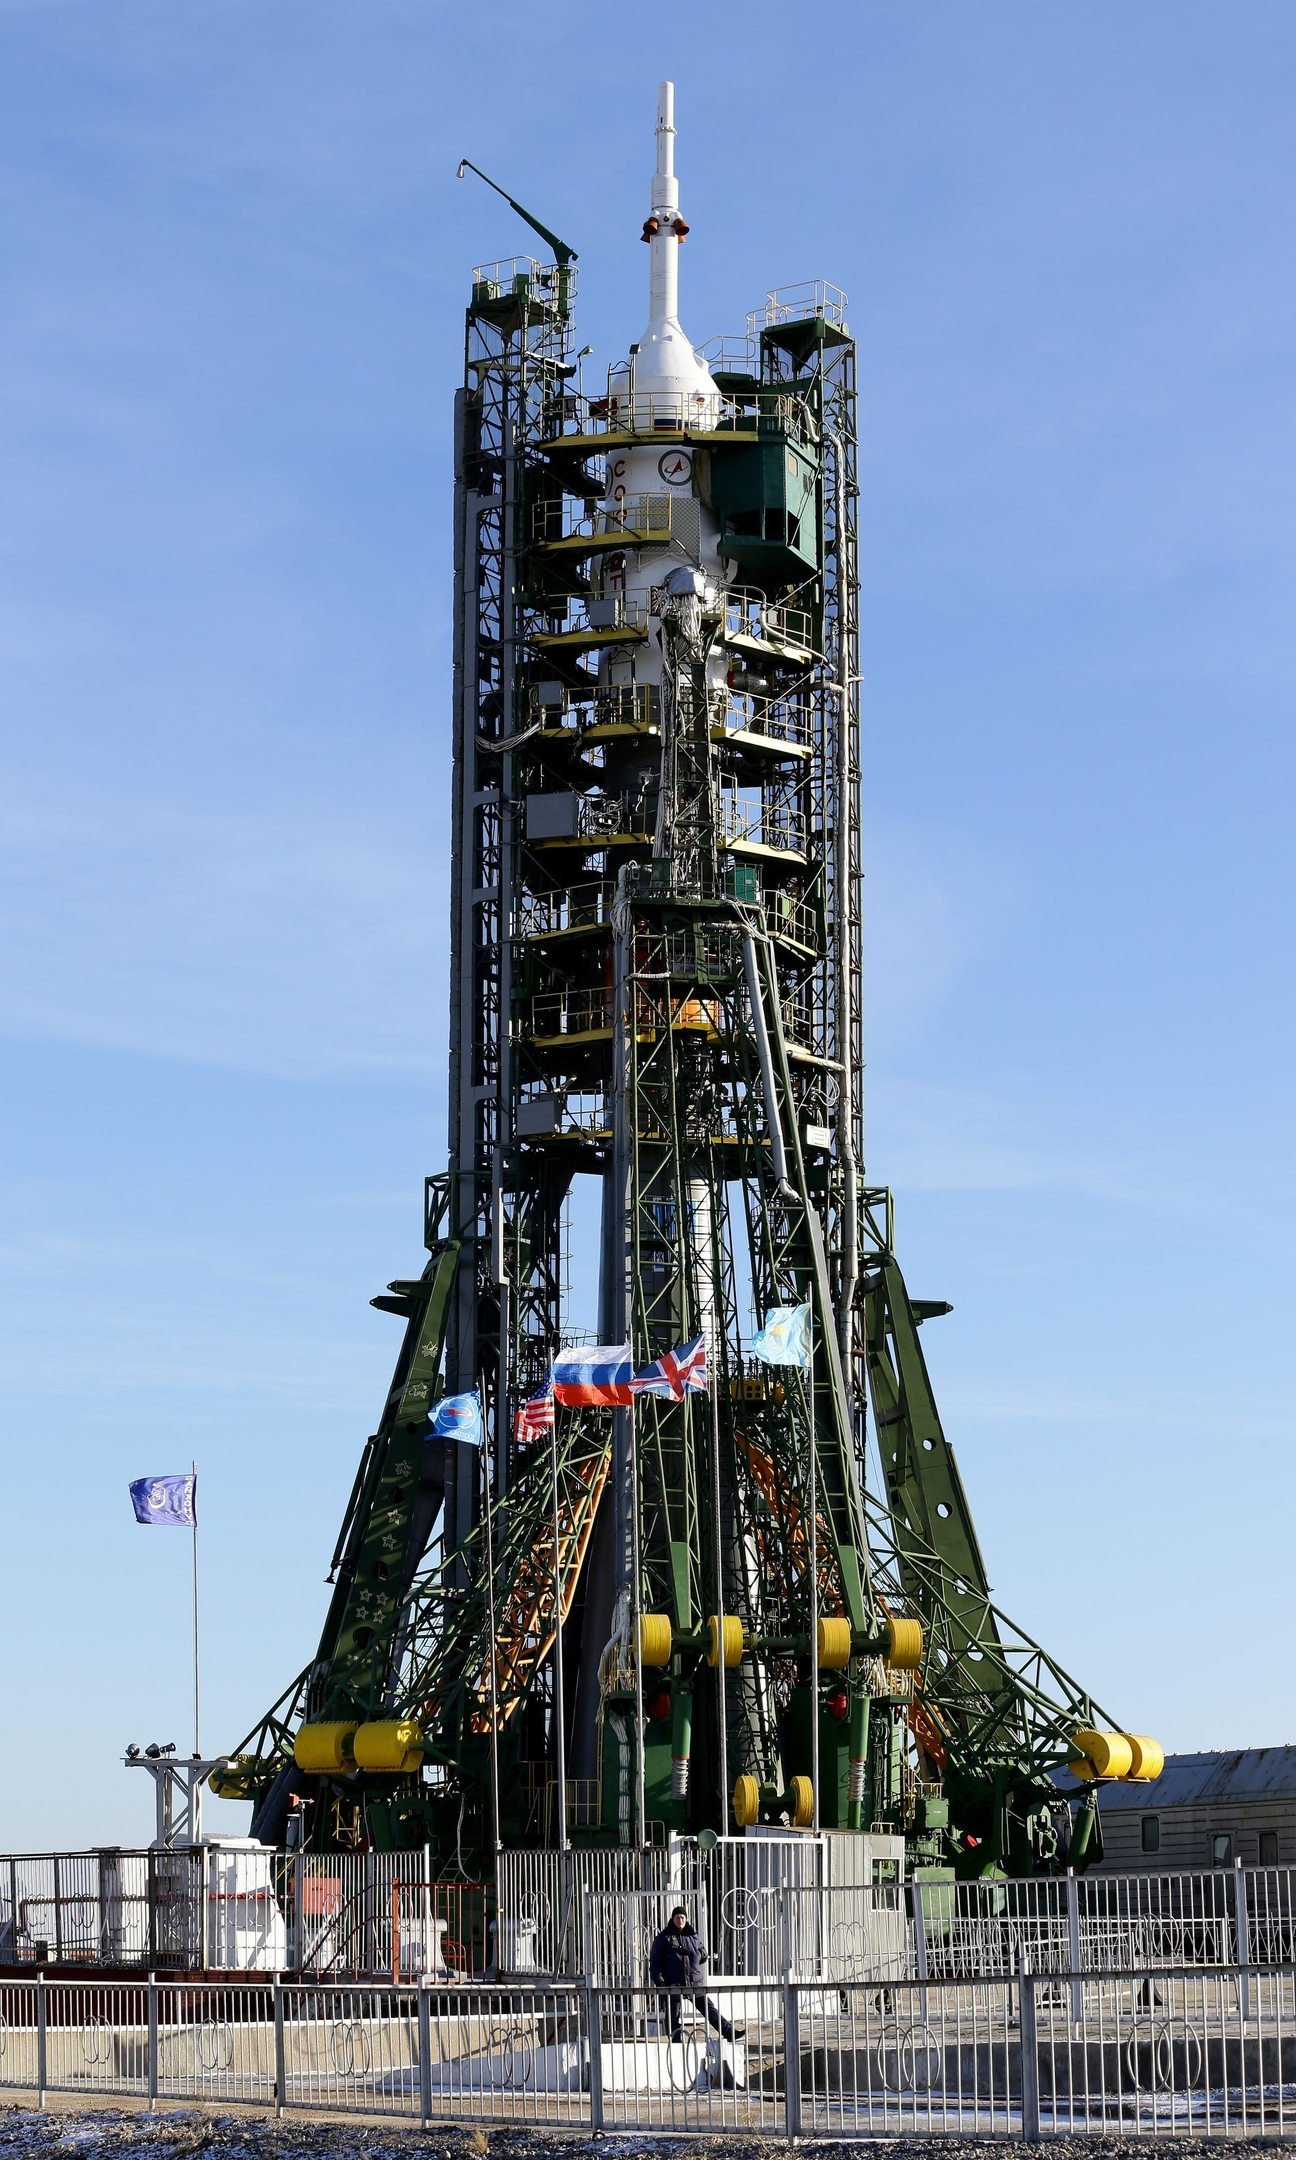 The Soyuz FG rocket sits on the launch pad at Baikonur Cosmodrome in Kazakhstan,